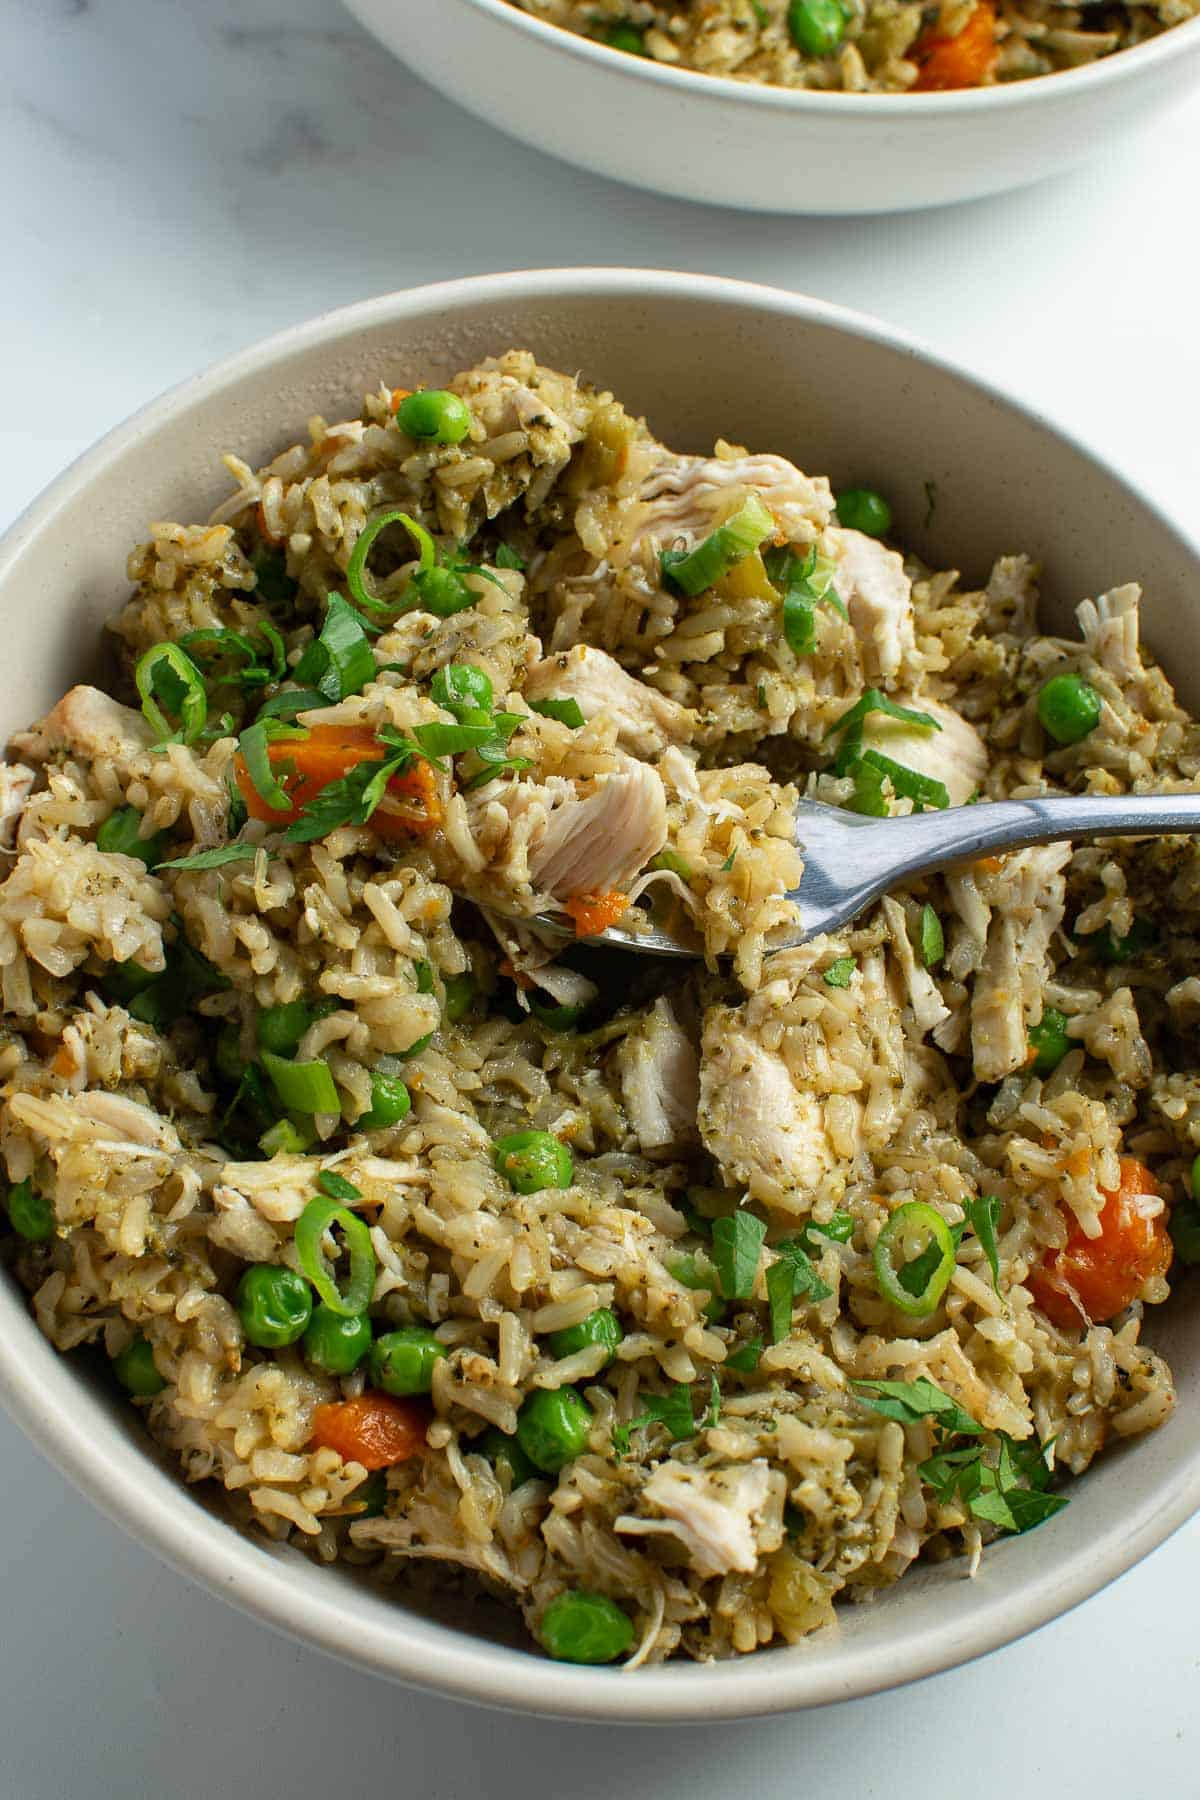 Instant pot chicken and rice garnished with parsley and scallions.